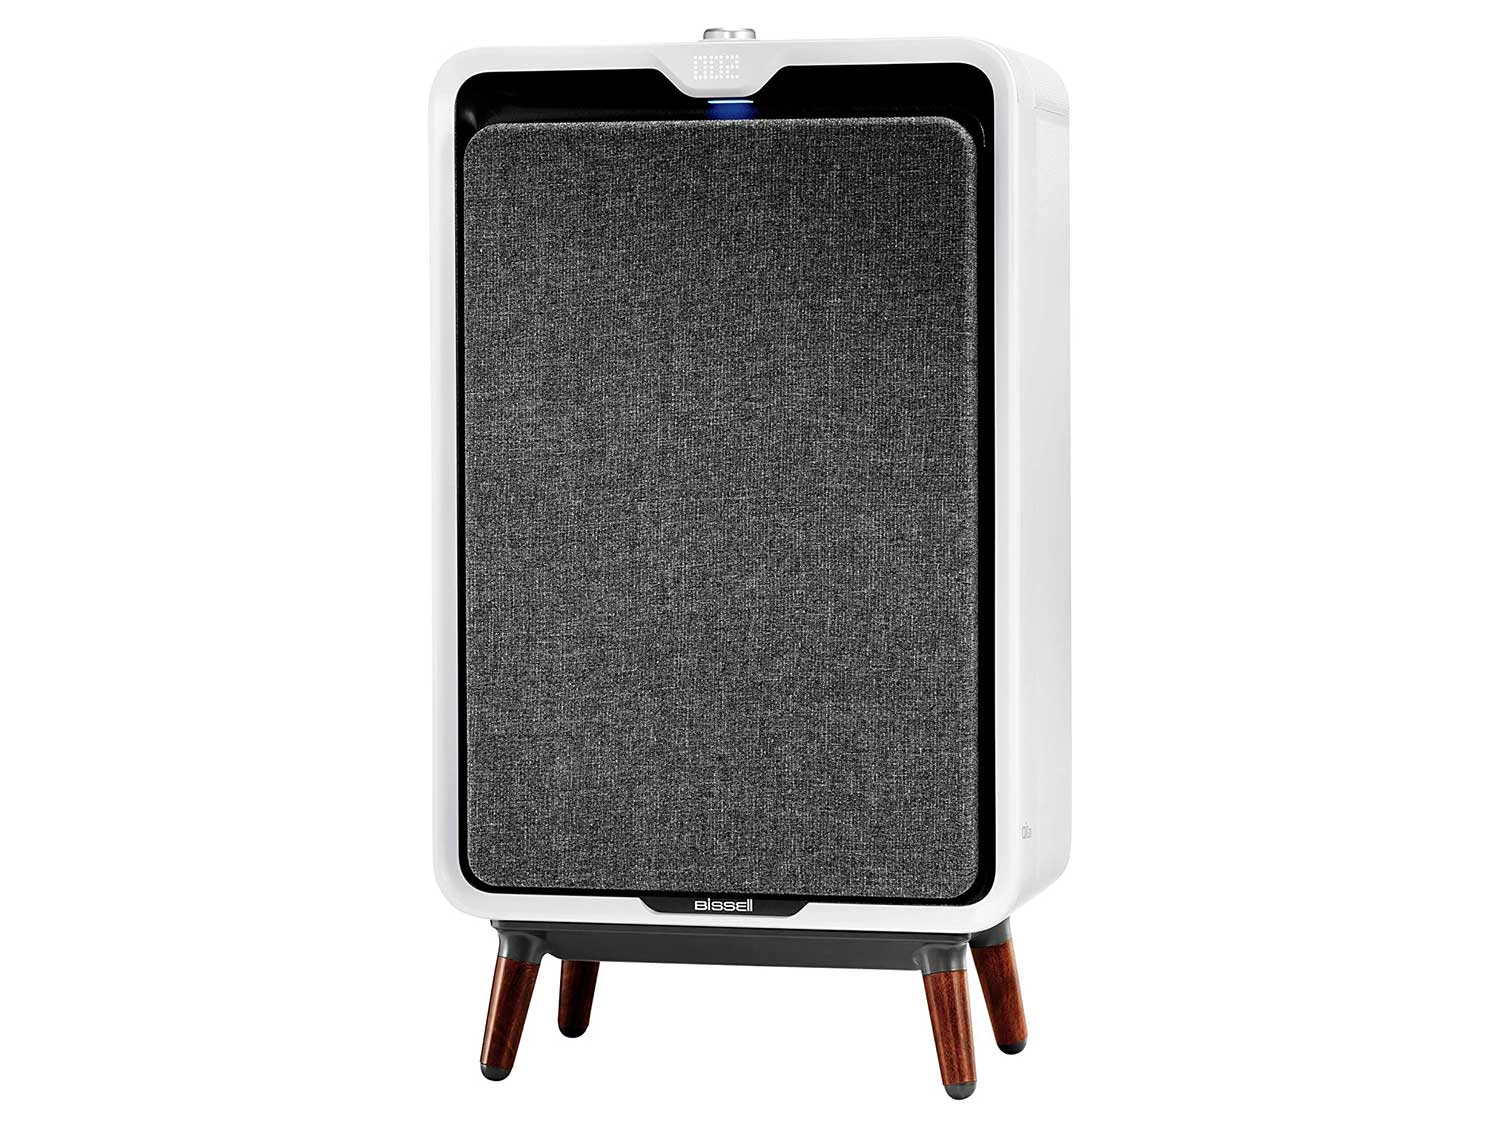 Bissell air320 Smart Air Purifier with HEPA and Carbon Filters for Large Room and Home, Quiet Bedroom Air Cleaner for Allergies, Pets, Dust, Dander, Pollen, Smoke, Odors, Auto Mode, 2768A, White/Grey